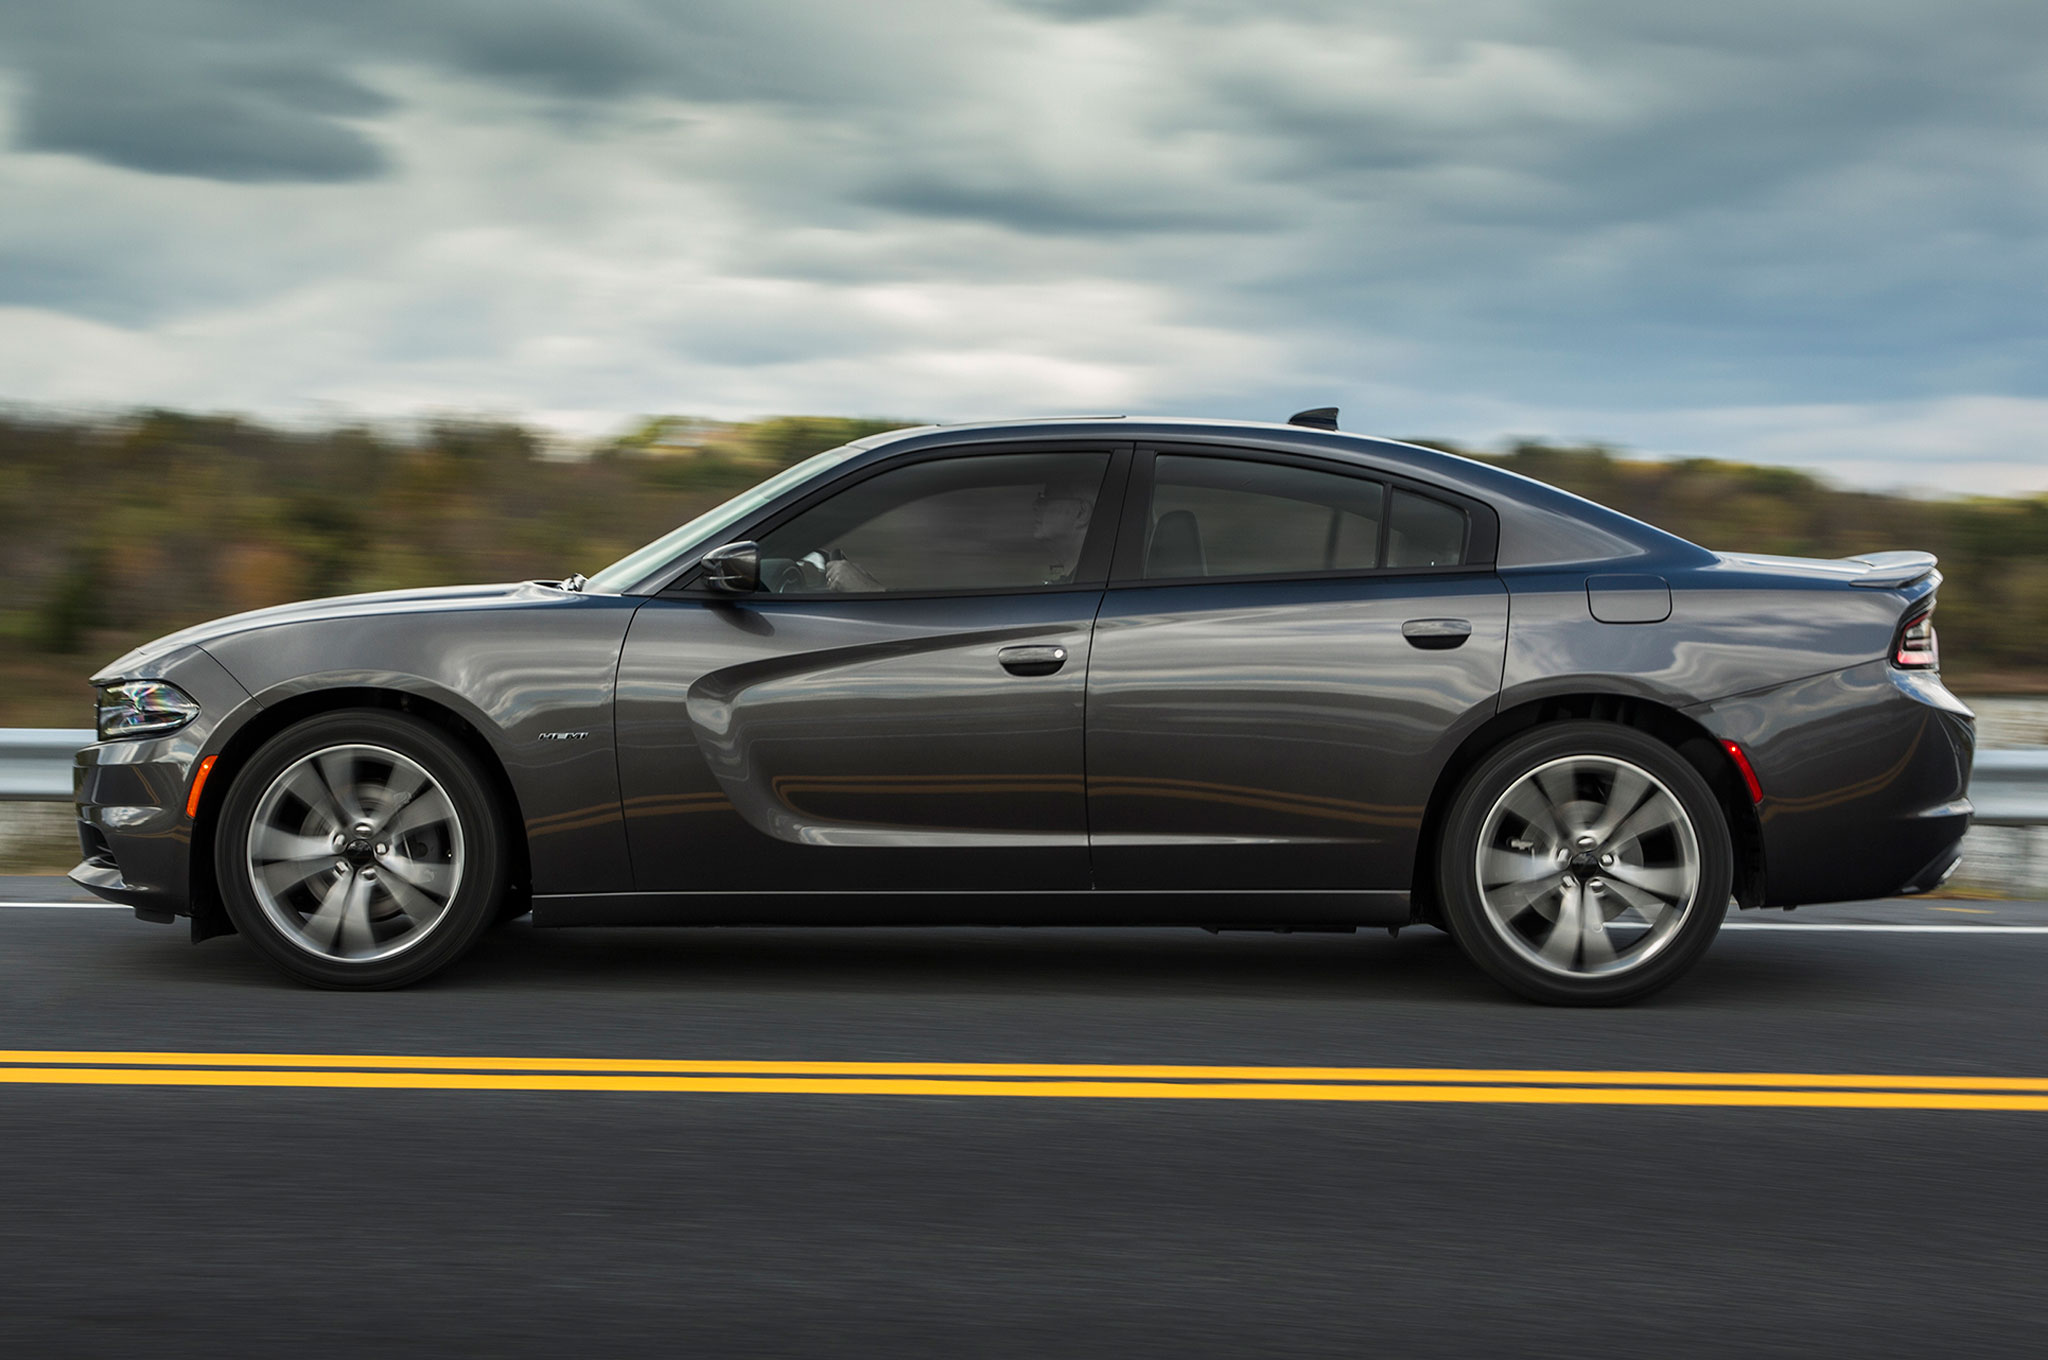 2014 dodge charger rt awd review 2018 dodge reviews